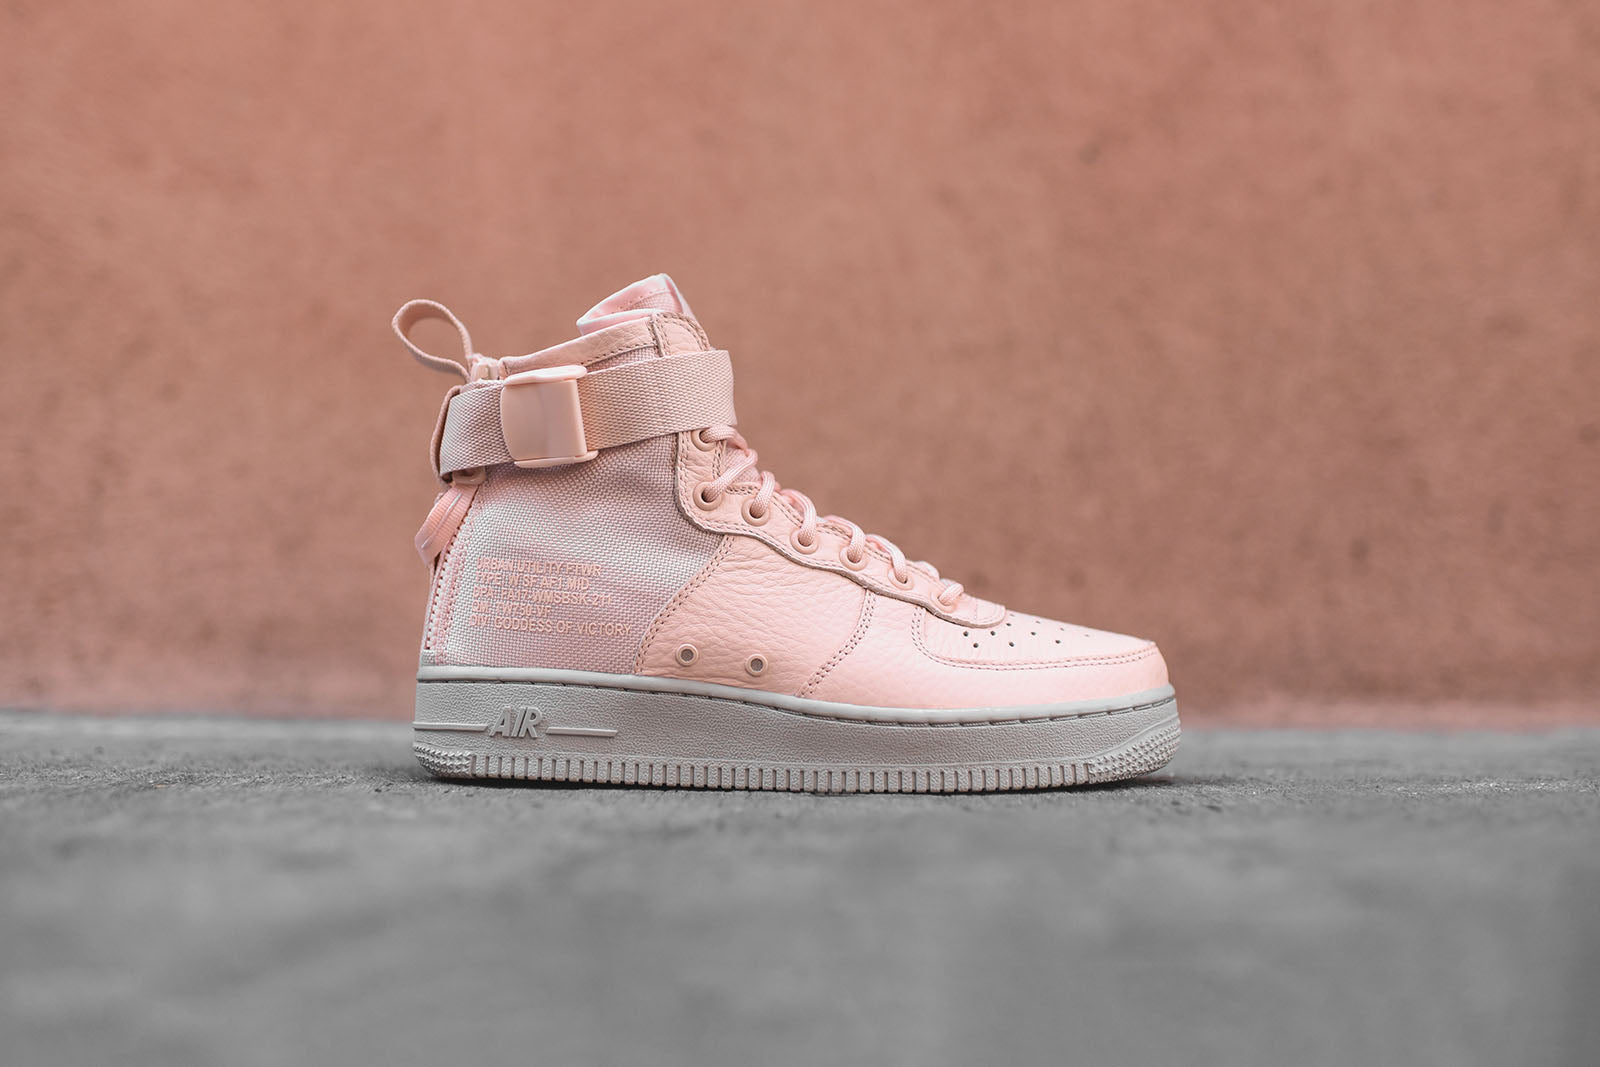 new style 162a7 4237c Nike WMNS SF-AF1 Mid - Pink / Grey – Kith